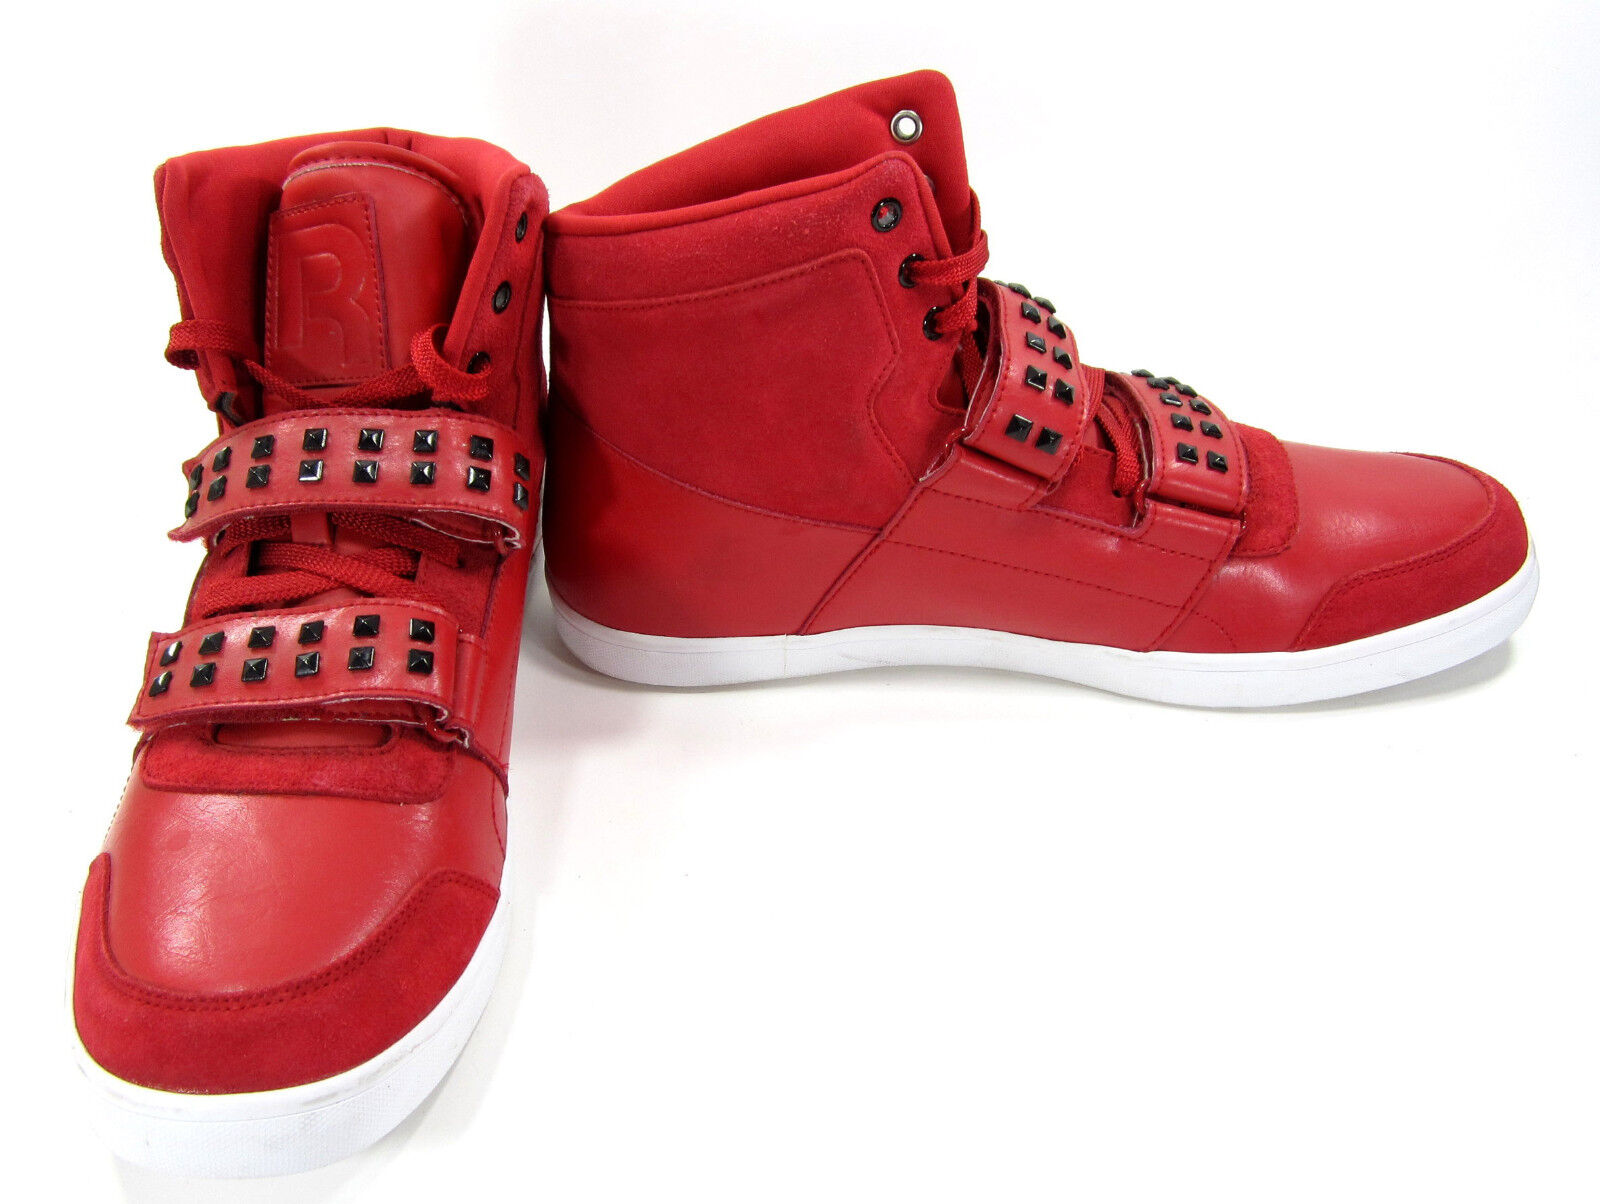 Reebok Shoes Classic Mid Studed Suede/Pelle Red  Size 10